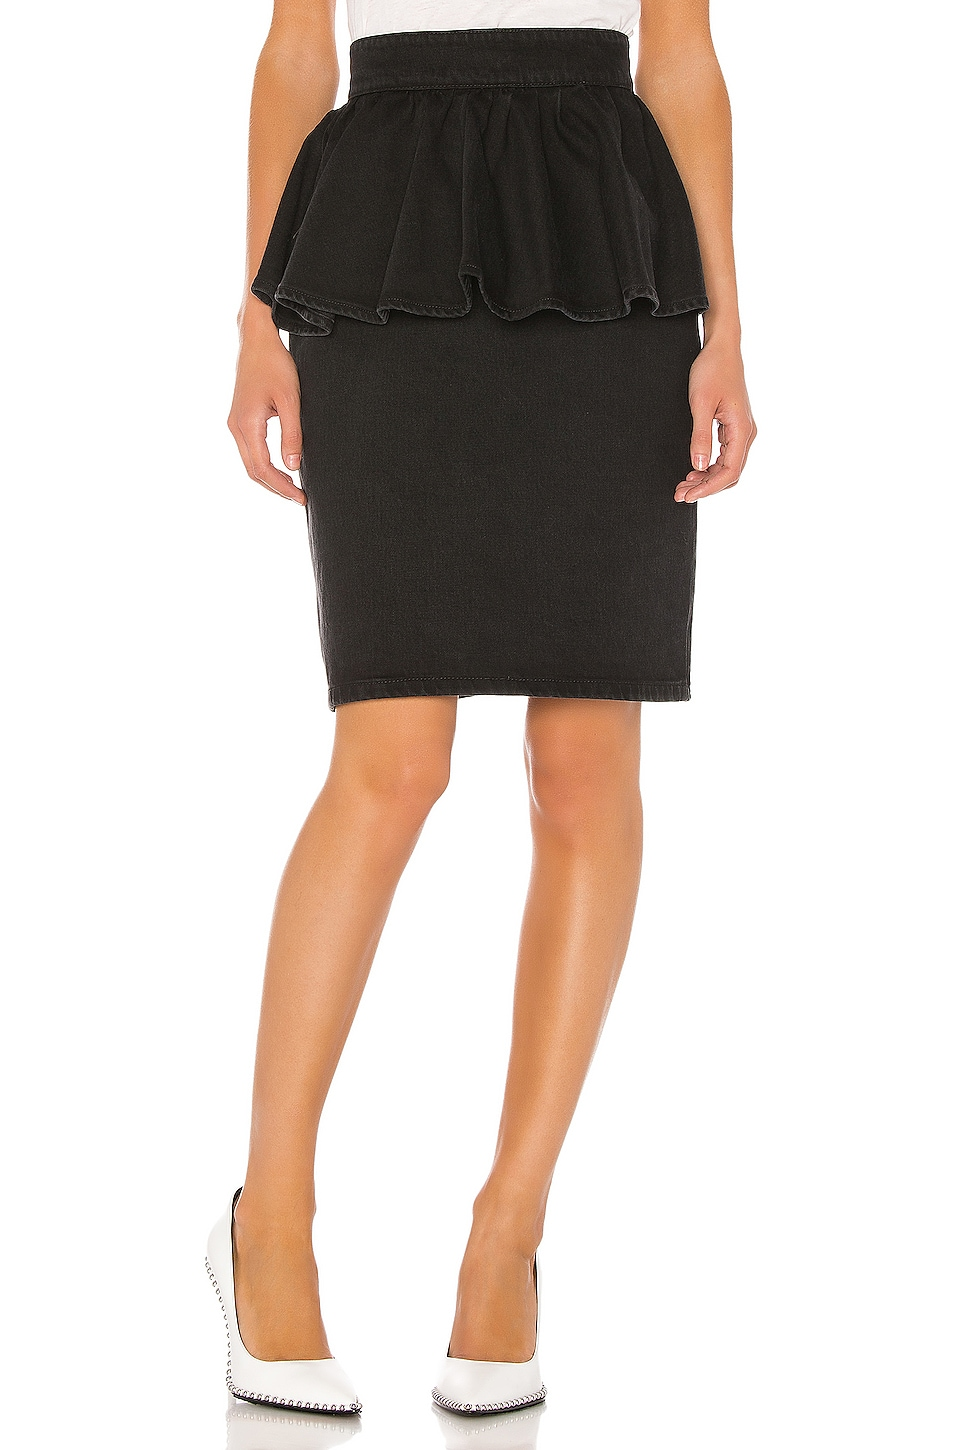 MSGM Peplum Skirt in Black